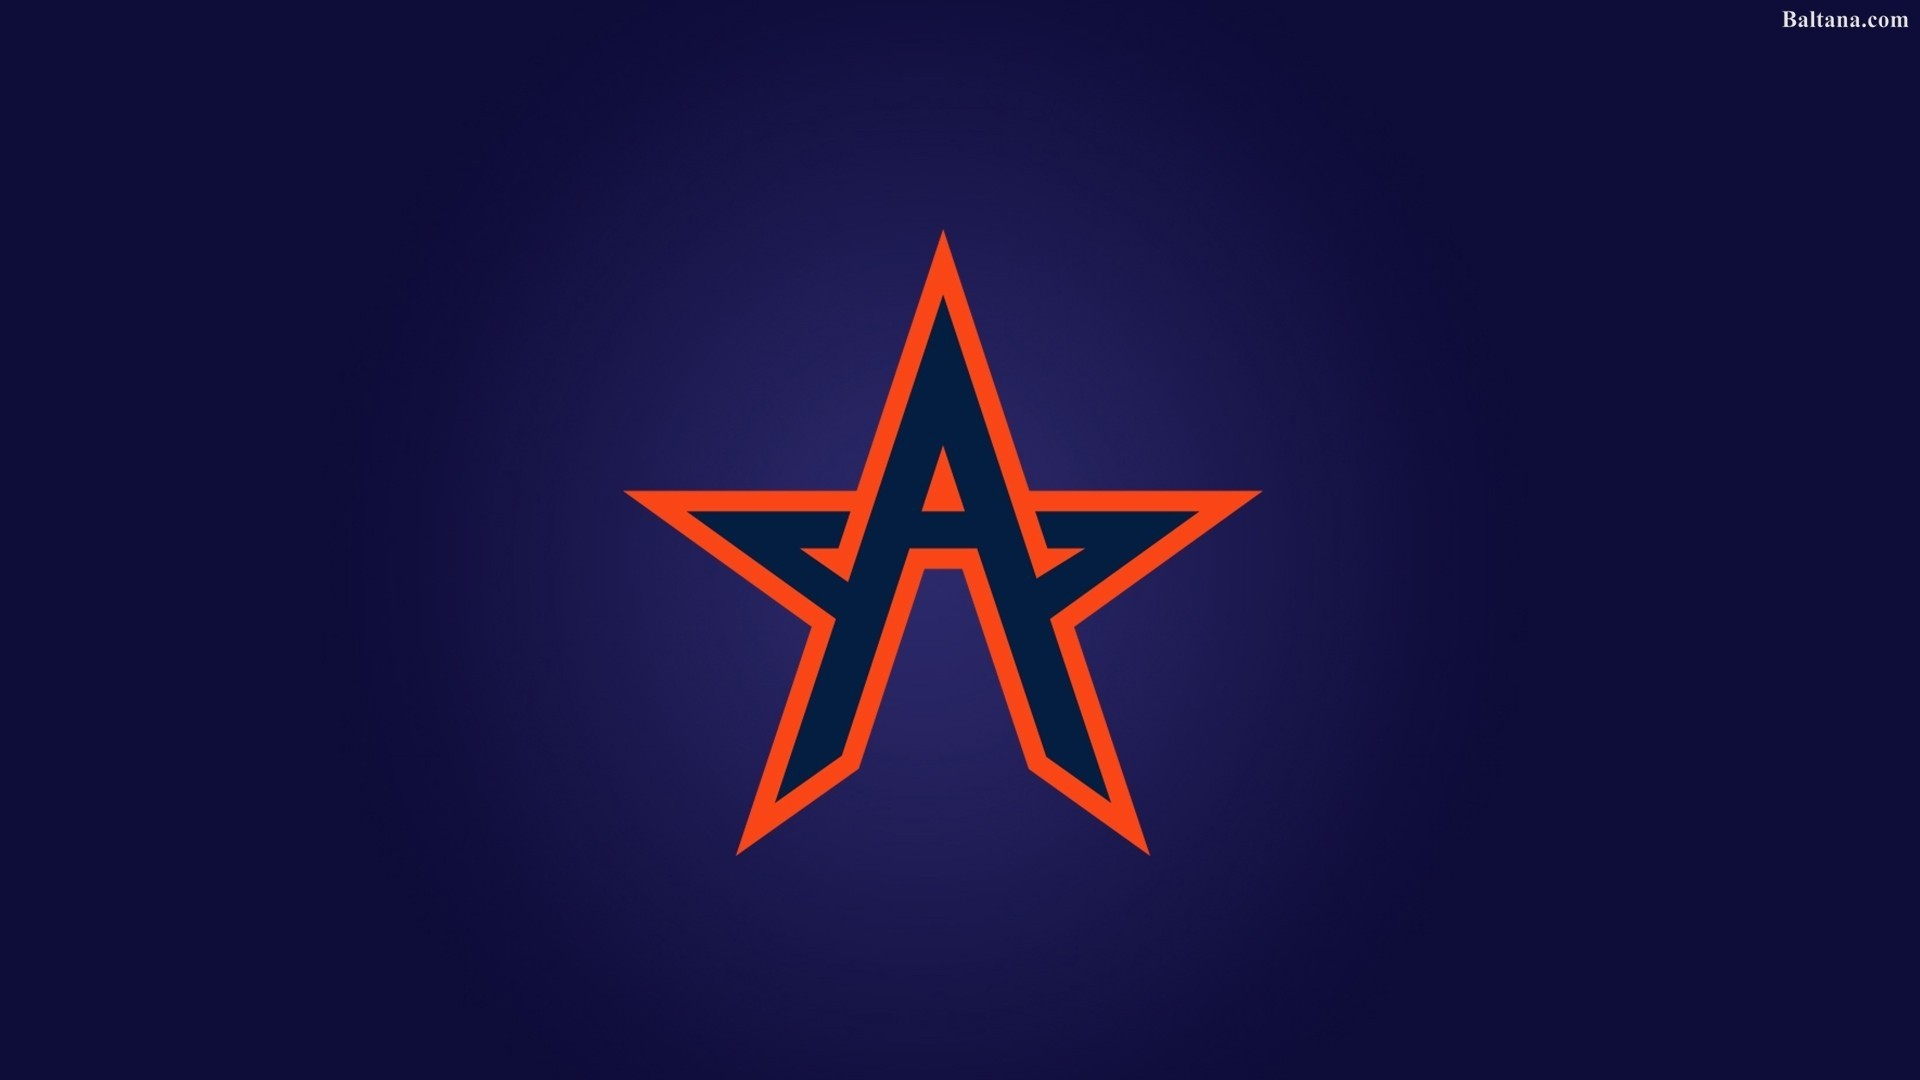 Houston Astros Wallpaper and Background